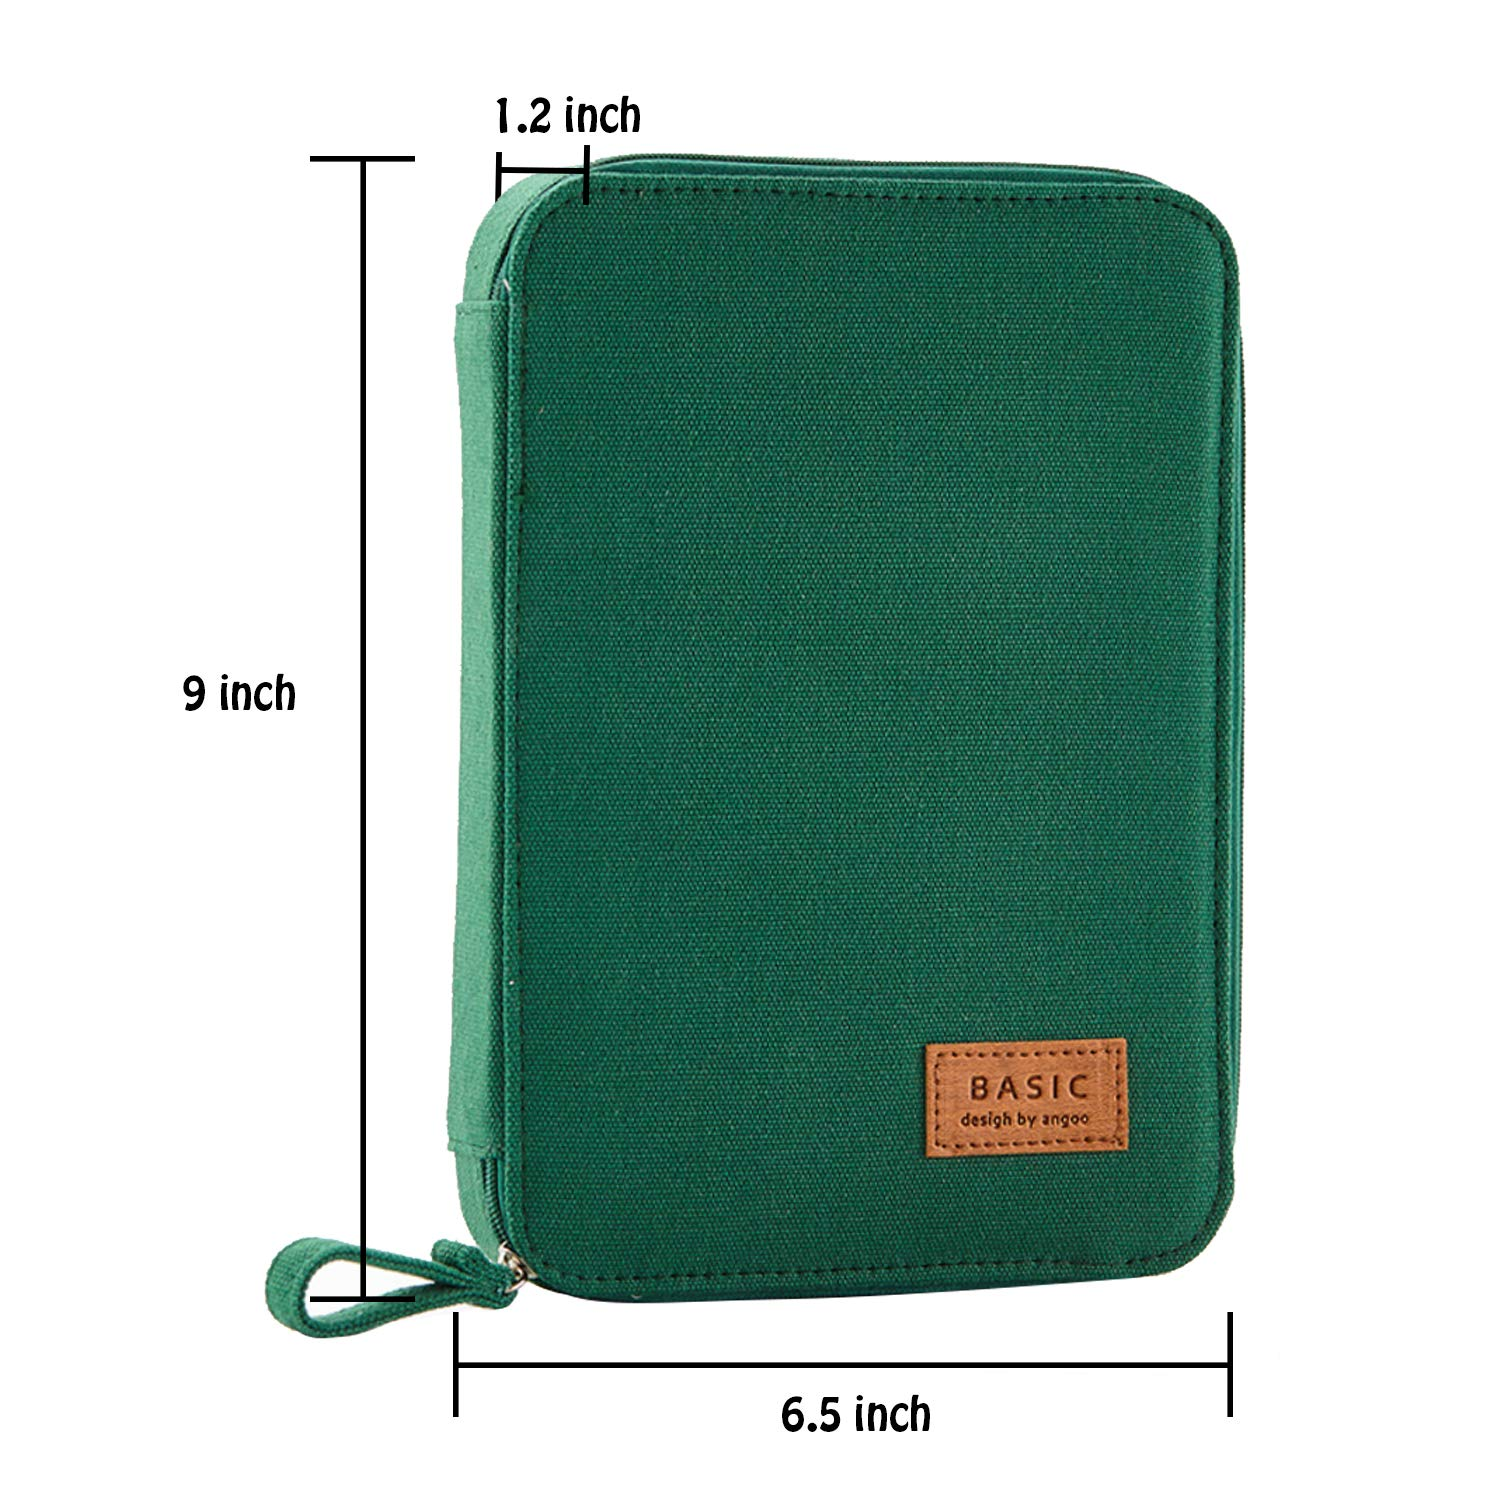 2f3044e8e352 izBuy Zipper Pencil Case Stationery Organizer, Durable Canvas Big Capacity  Pen Holder Multifunctional Pouch Box, Office School Supplies with a ...